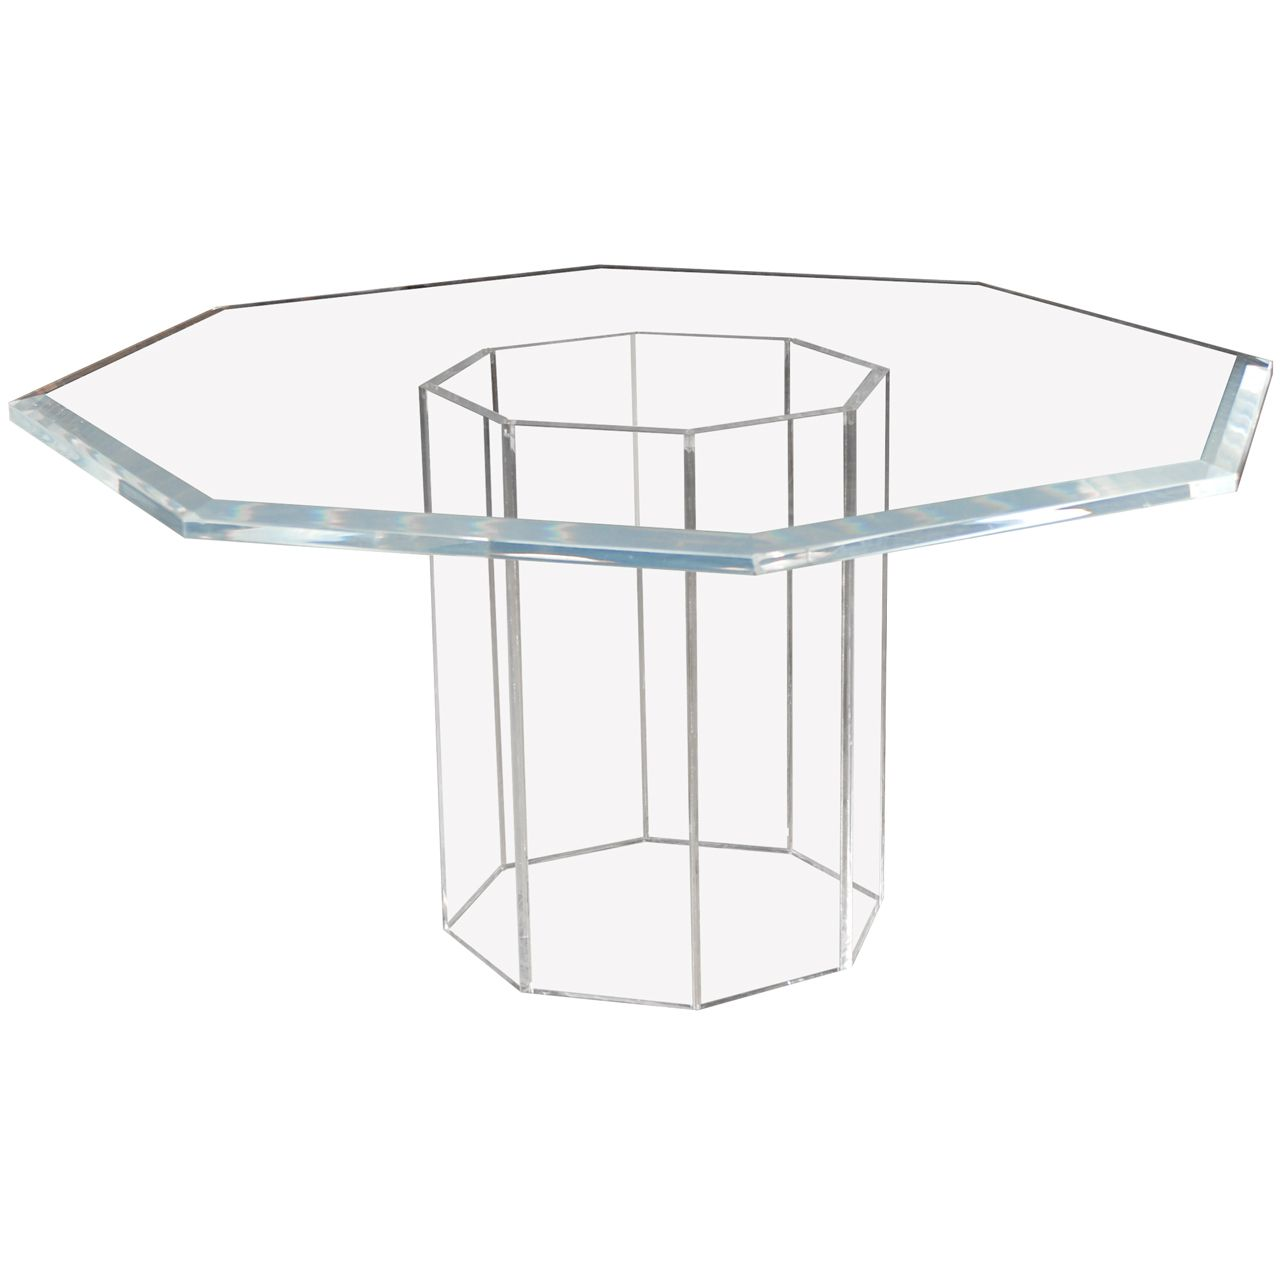 Magnificent Lucite Octagonal Table